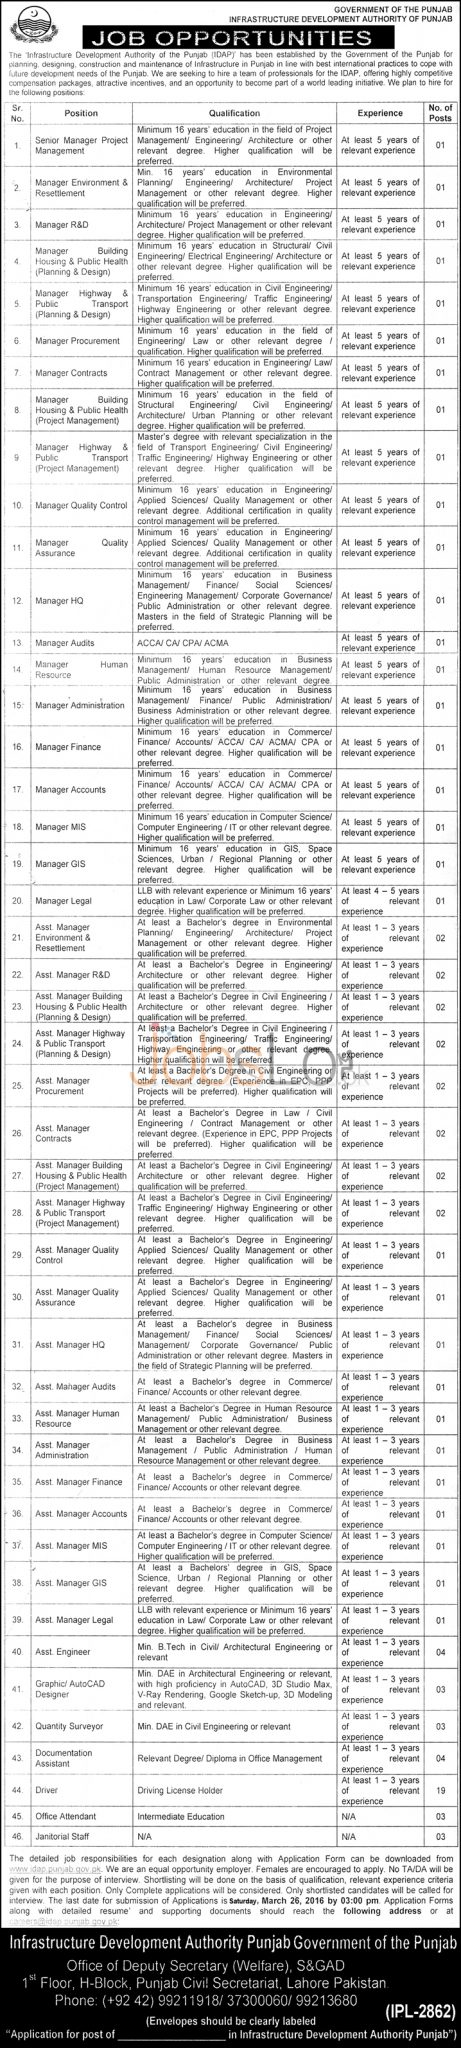 Recruitment Offers in Infrastructure Development Authority Punjab 12 March 2016 Application Form Last Date